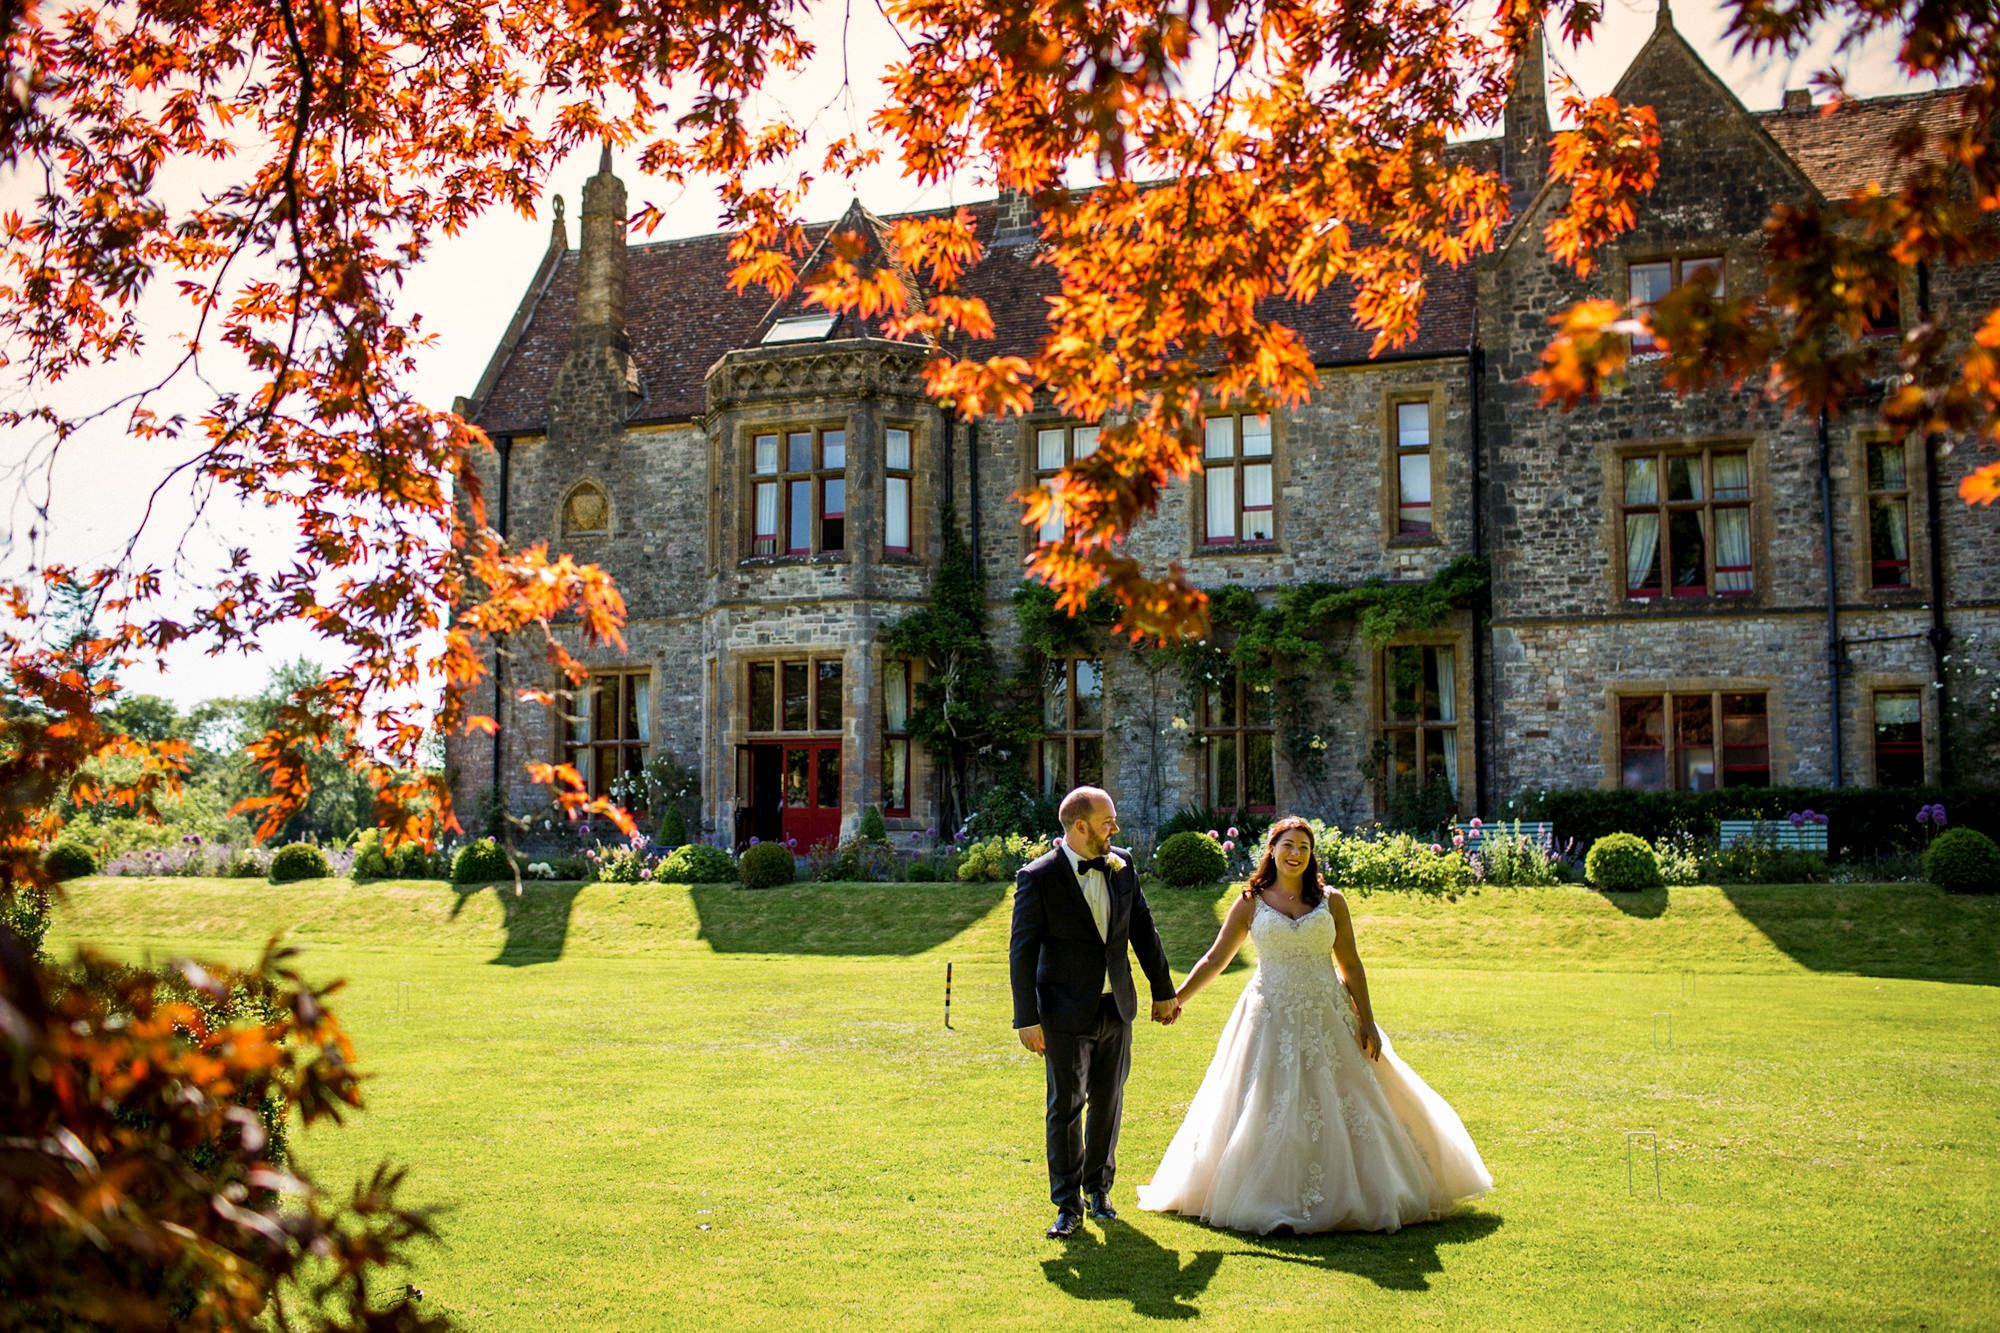 huntsham court wedding with bride and groom